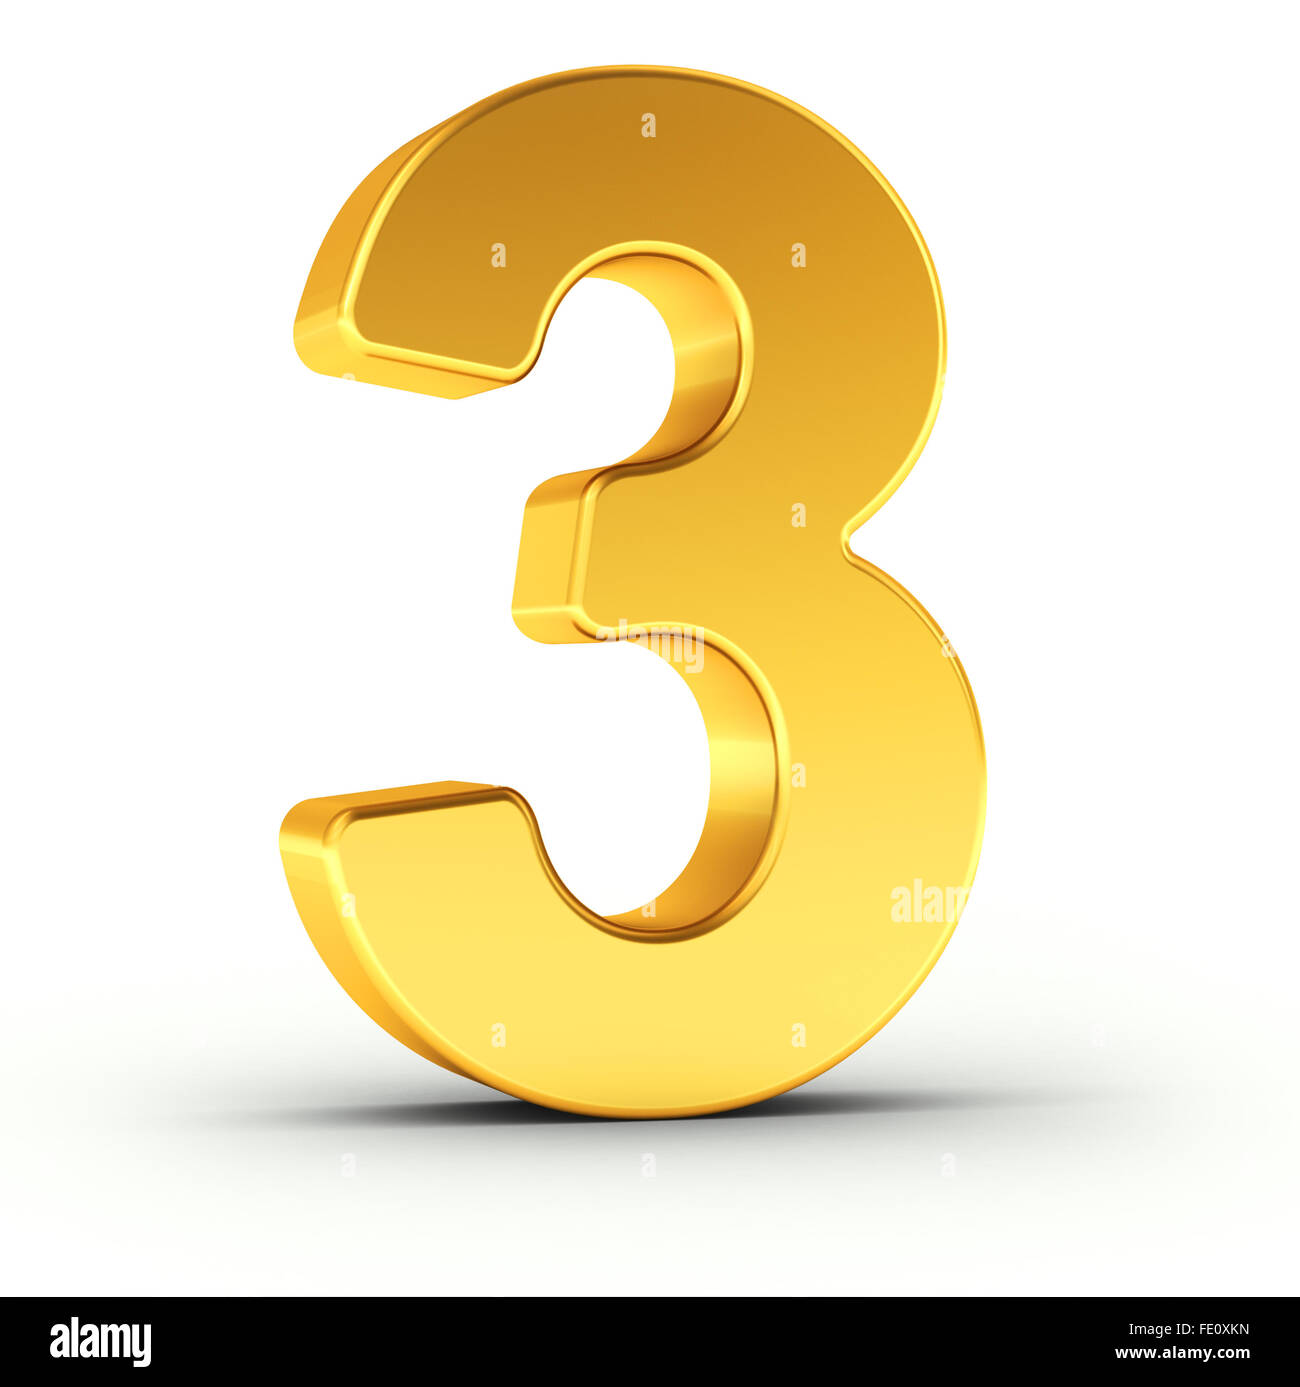 The number three as a polished golden object - Stock Image